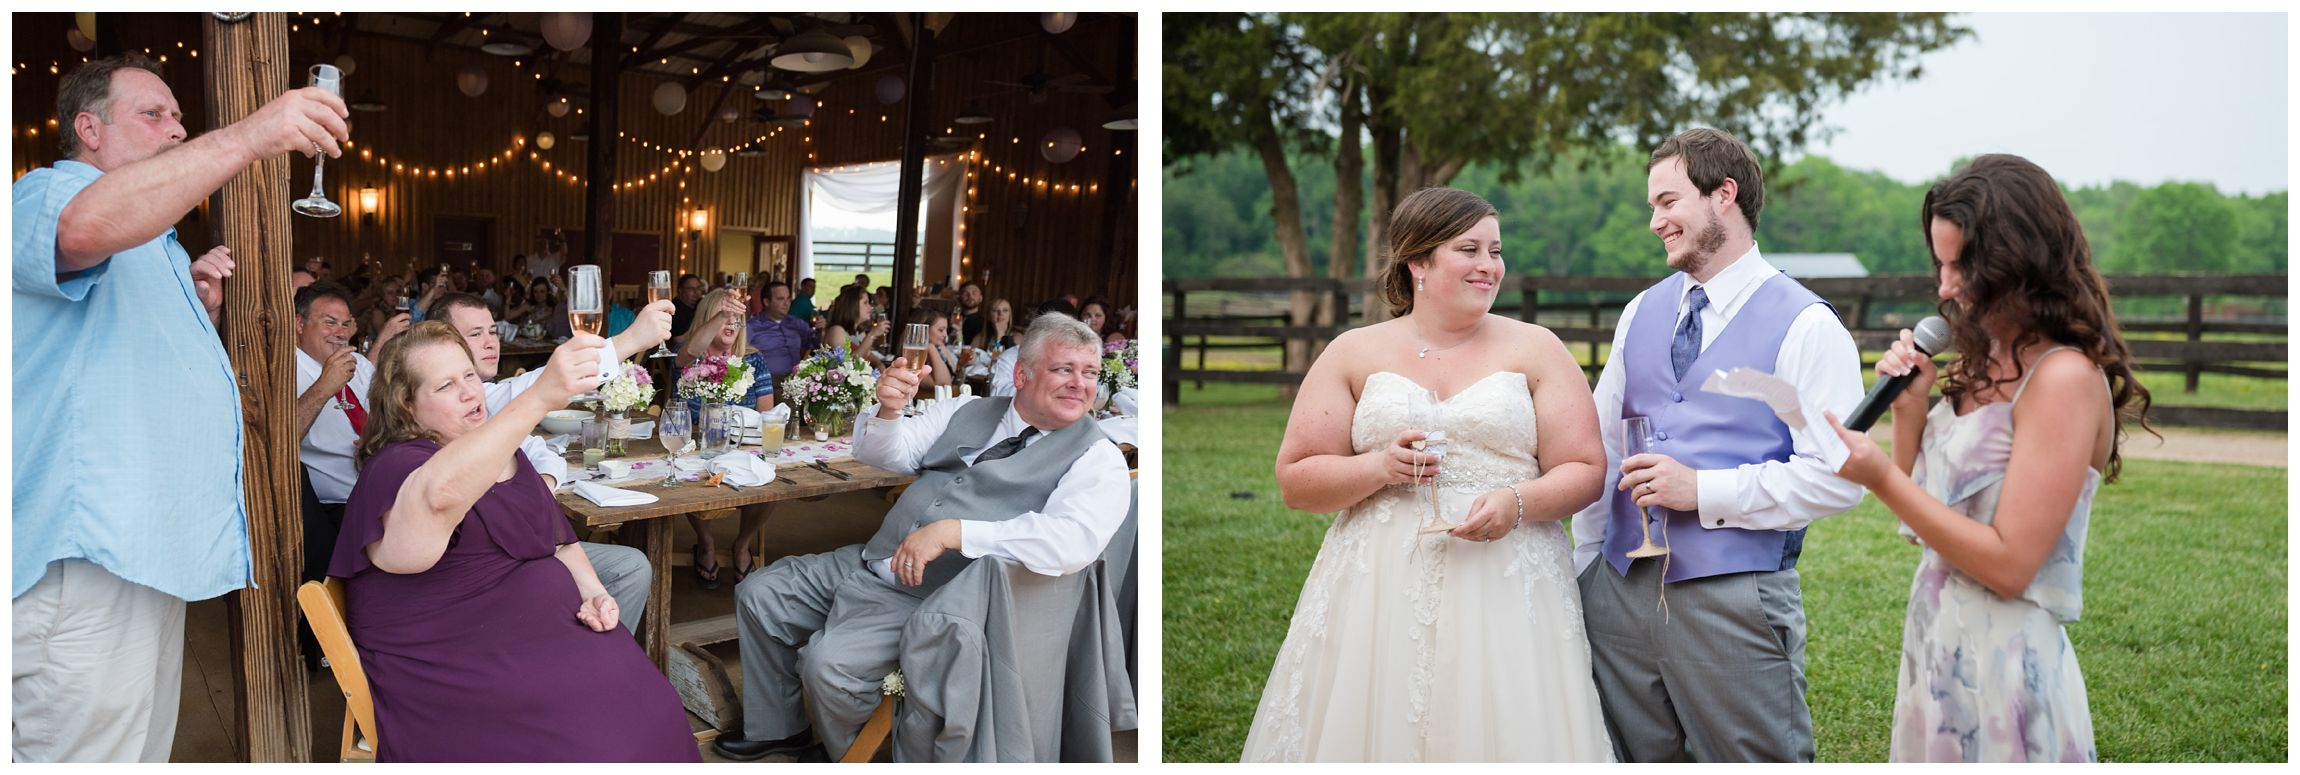 toasts during rustic Virginia wedding at Wolftrap Farm